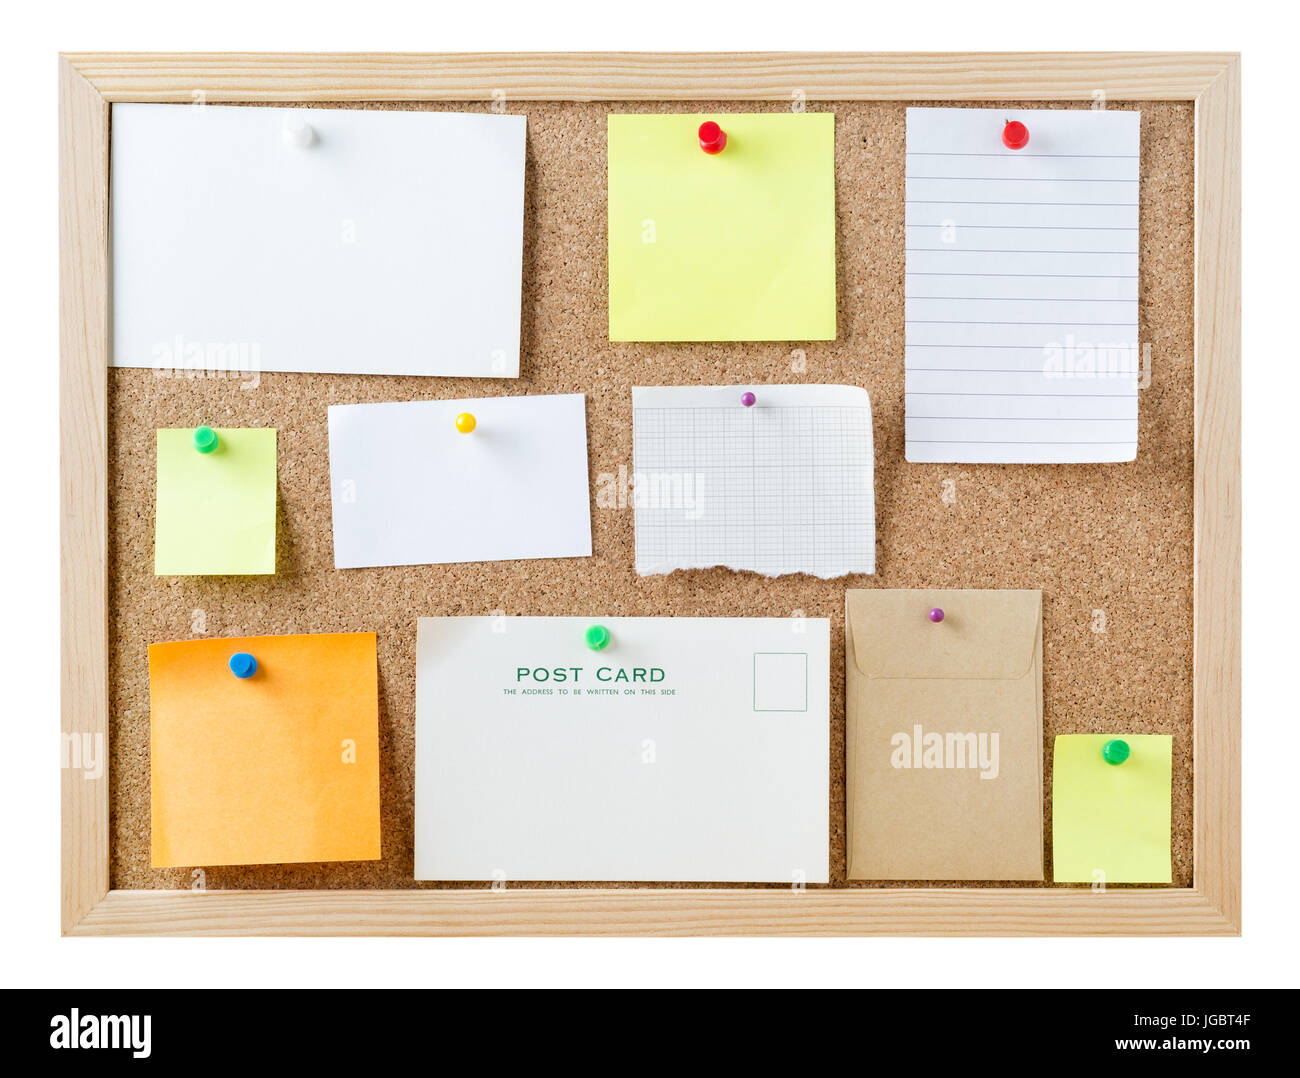 sticky notes stockfotos sticky notes bilder alamy. Black Bedroom Furniture Sets. Home Design Ideas